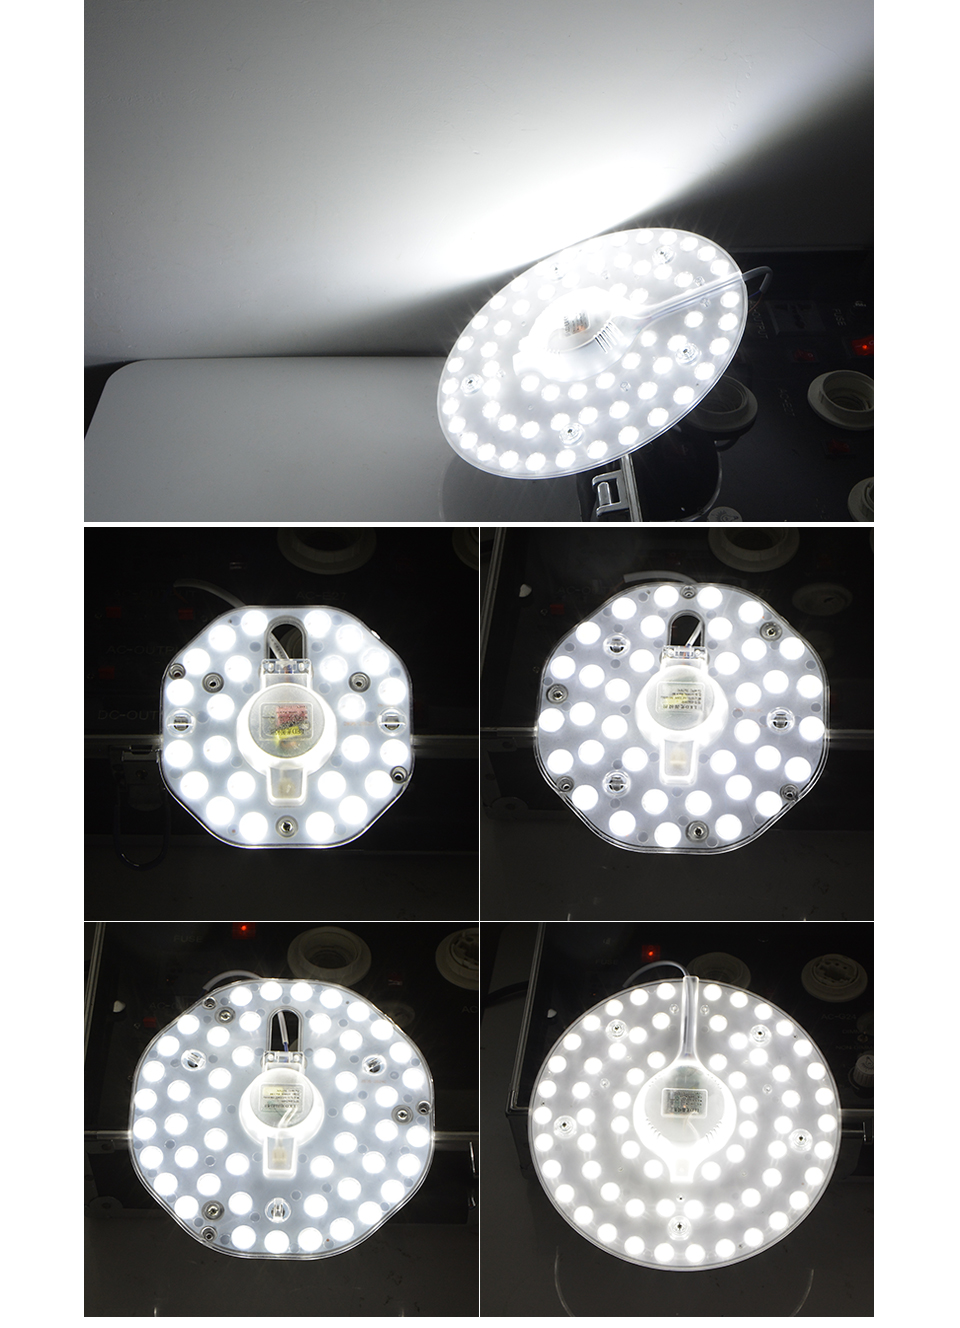 LED lamp light Source Module 220V 12W 18W 24W 32W Replace U O Type CFL ESL Tube Bulb 20W 30W 40W